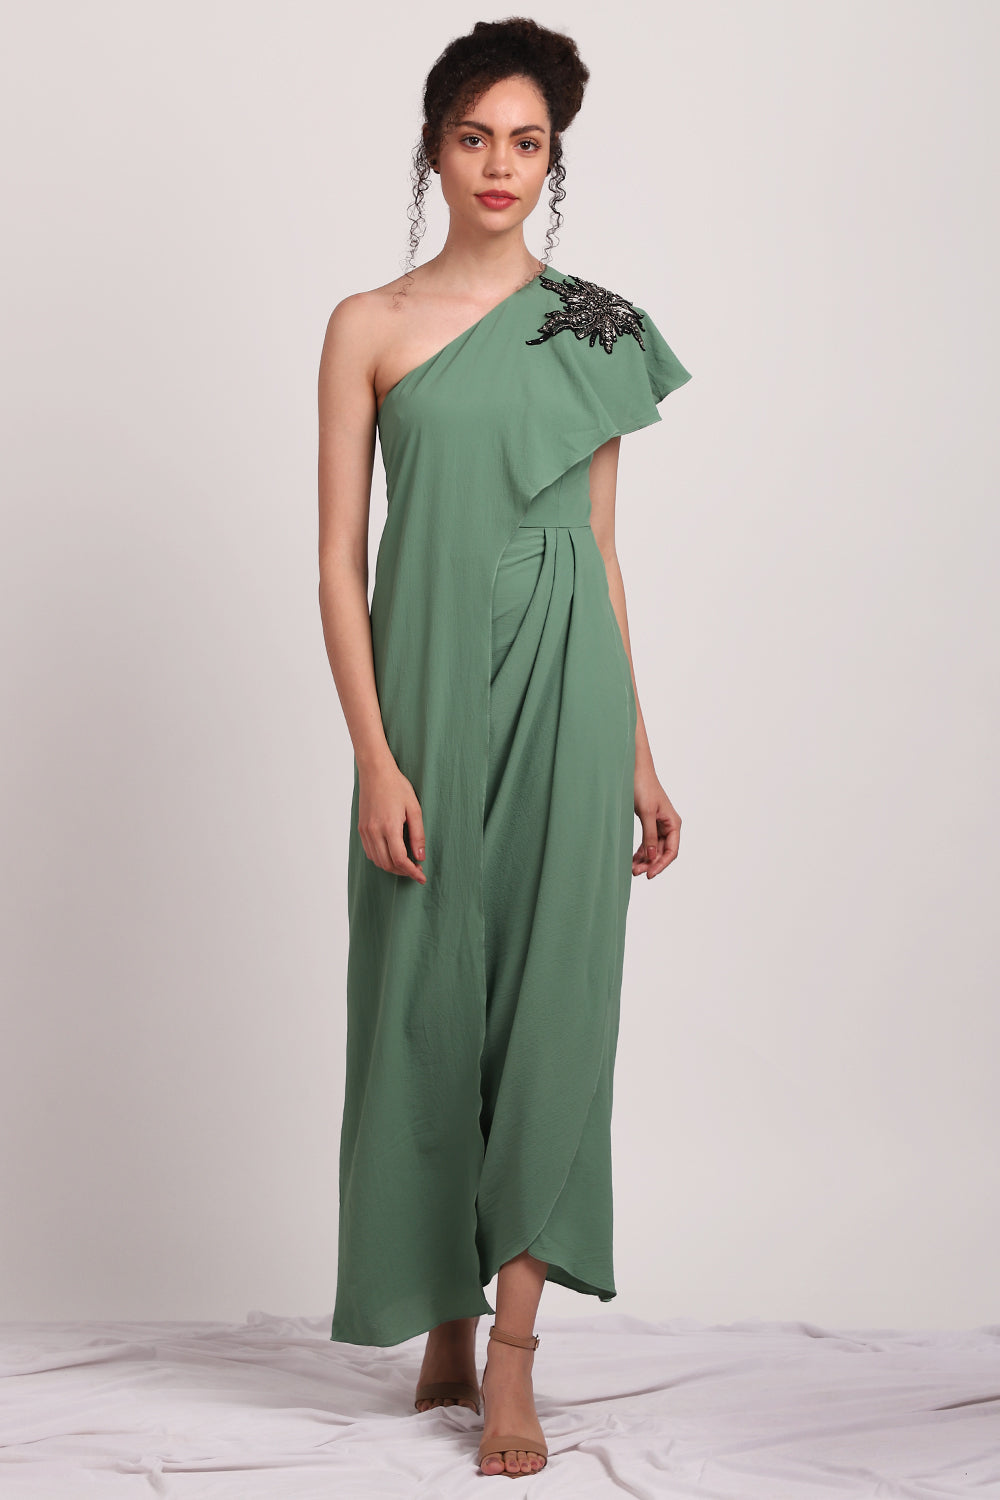 Fern Drape Dress